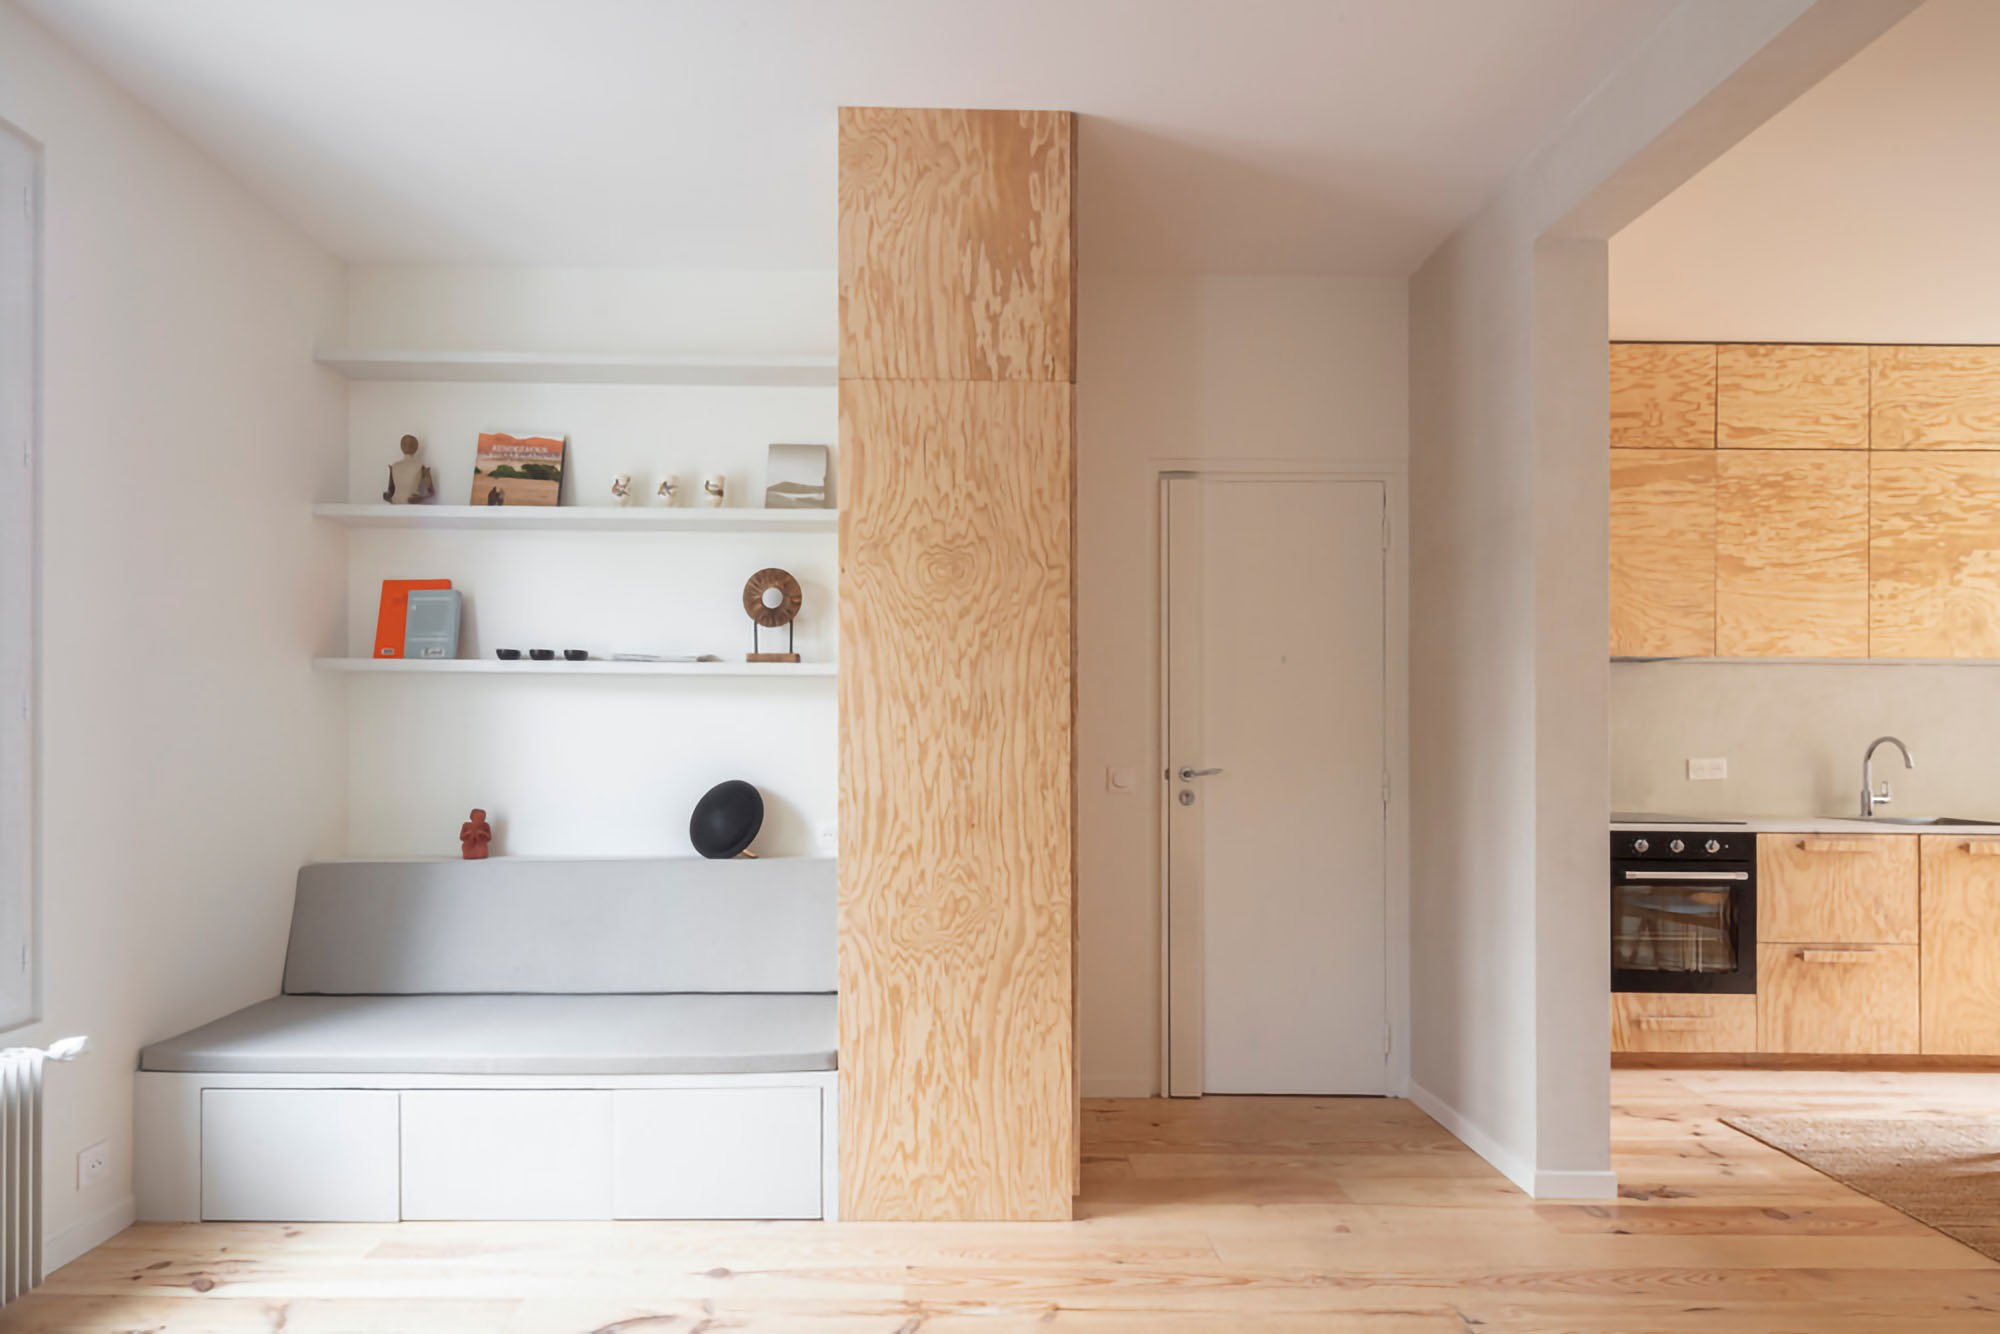 Five elegant wood interiors in sustainable, modern restyling projects